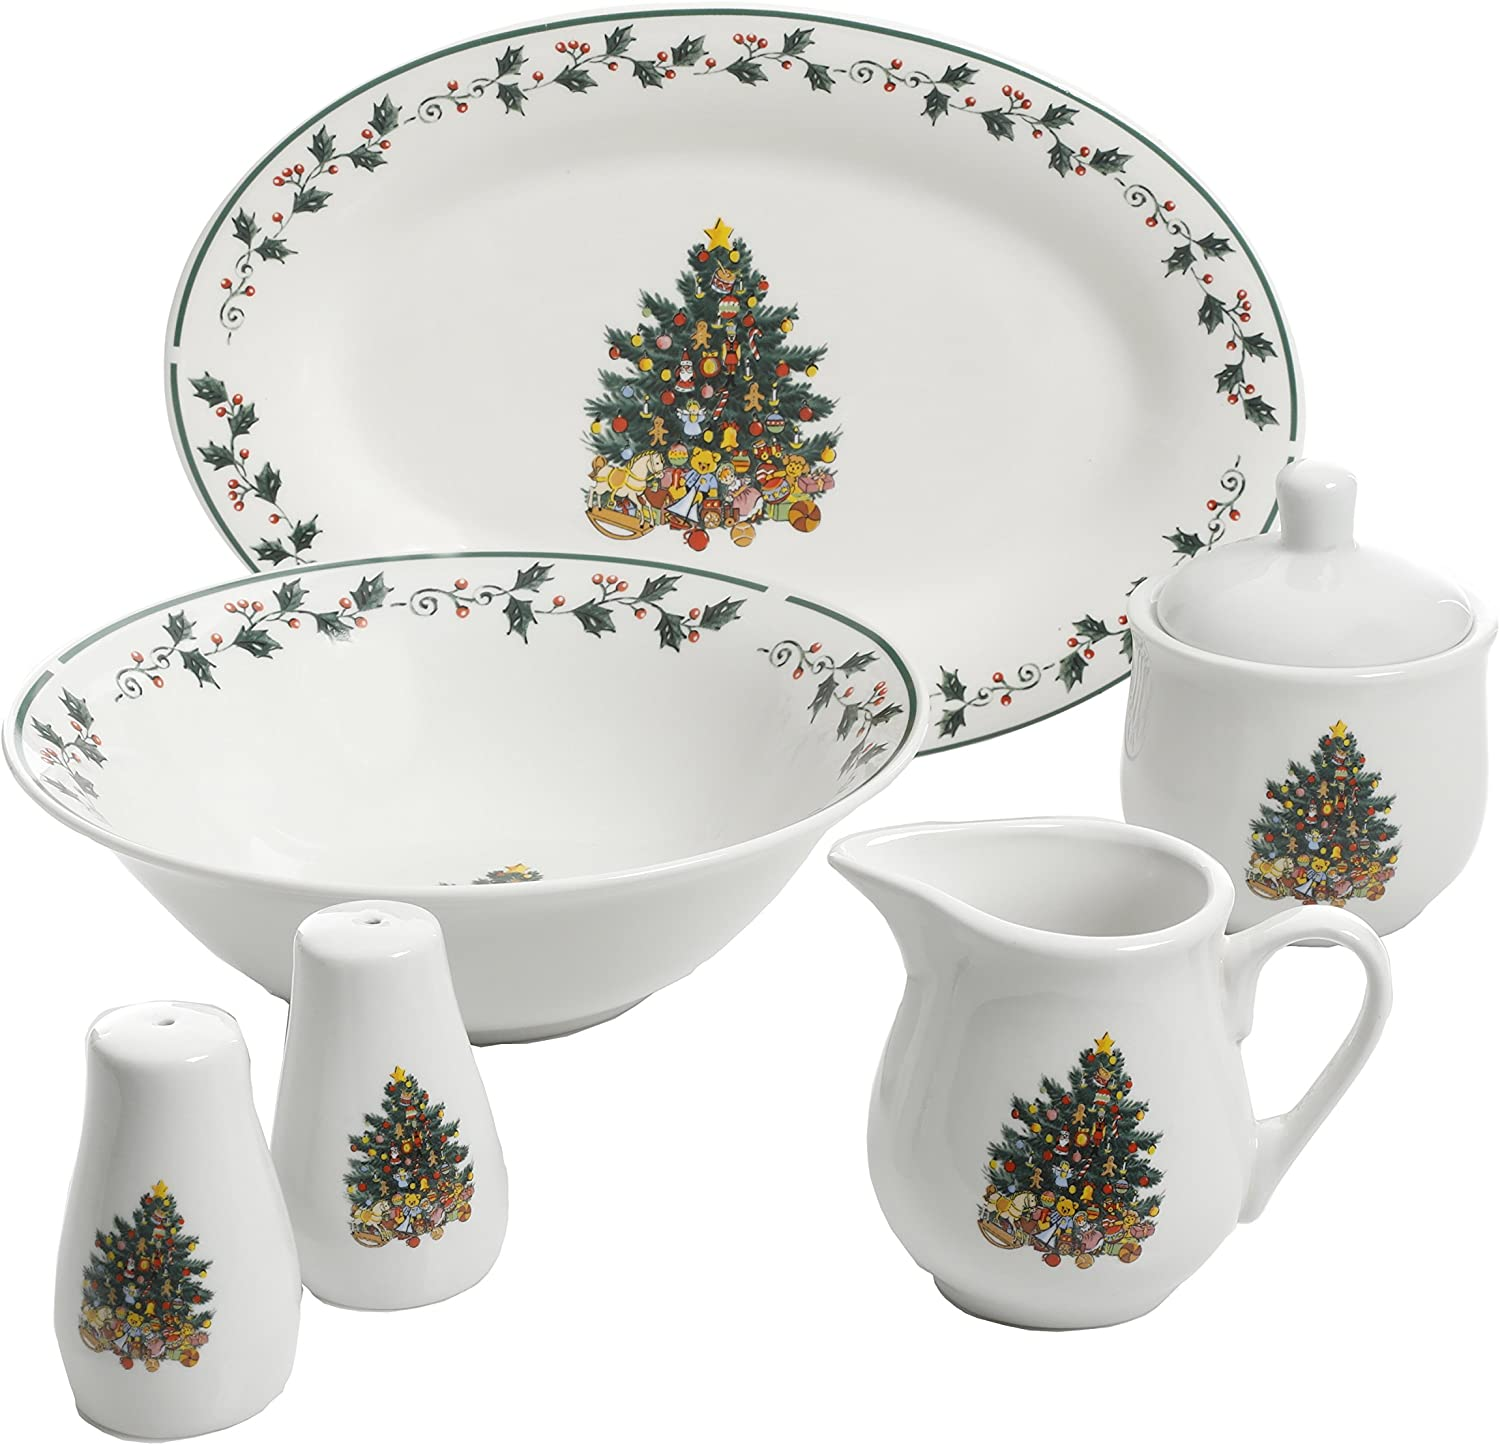 Gibson Home Christmas Tree Trimming, 7 PC Serving Set, Holiday